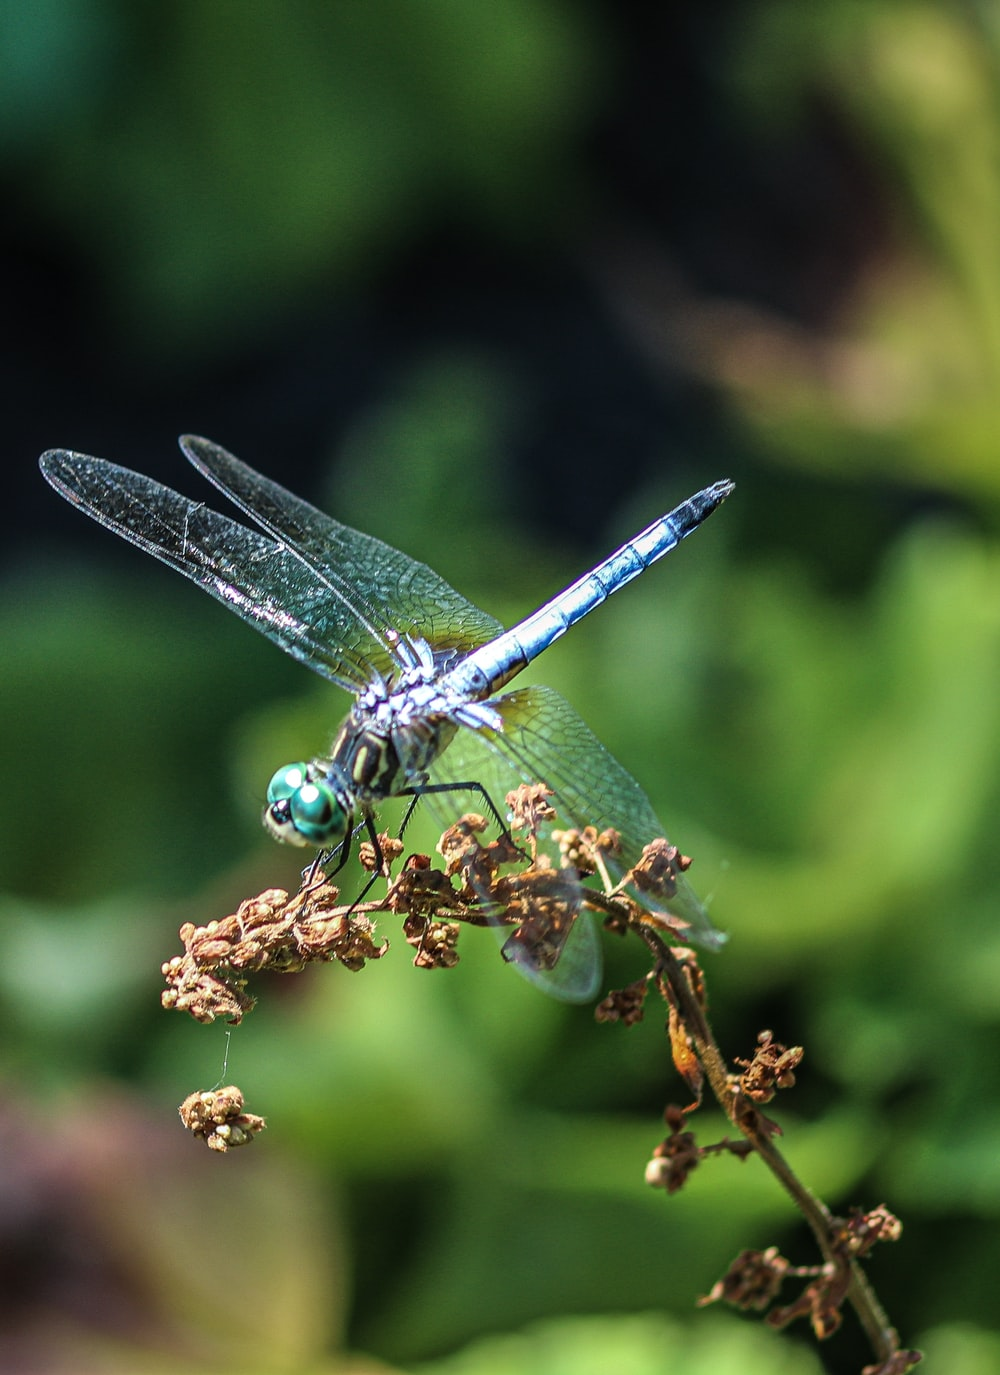 blue and white dragonfly perched on brown plant stem in close up photography during daytime